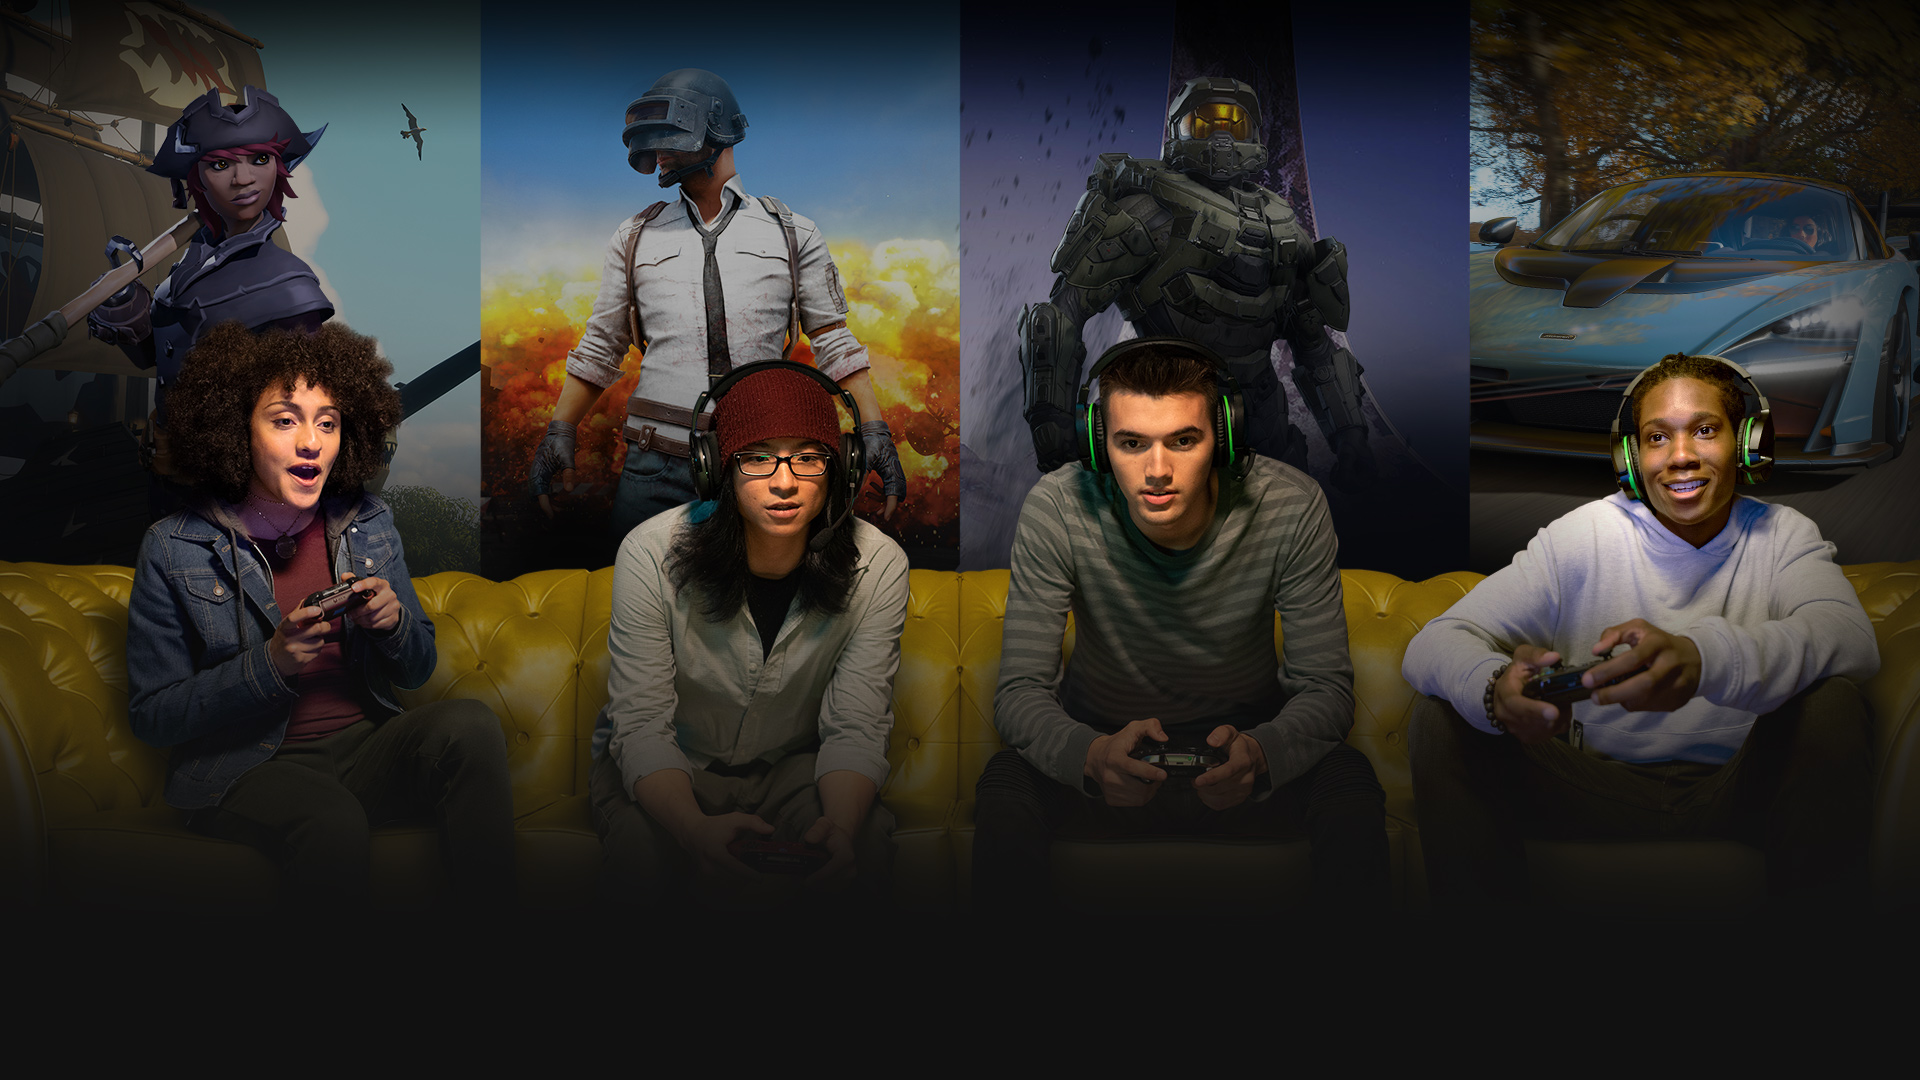 Four people holding Xbox One controllers and playing multiplayer games together, with a background collage of characters from Sea of Thieves, PLAYERUNKNOWN'S BATTLEGROUNDS, Halo and Forza